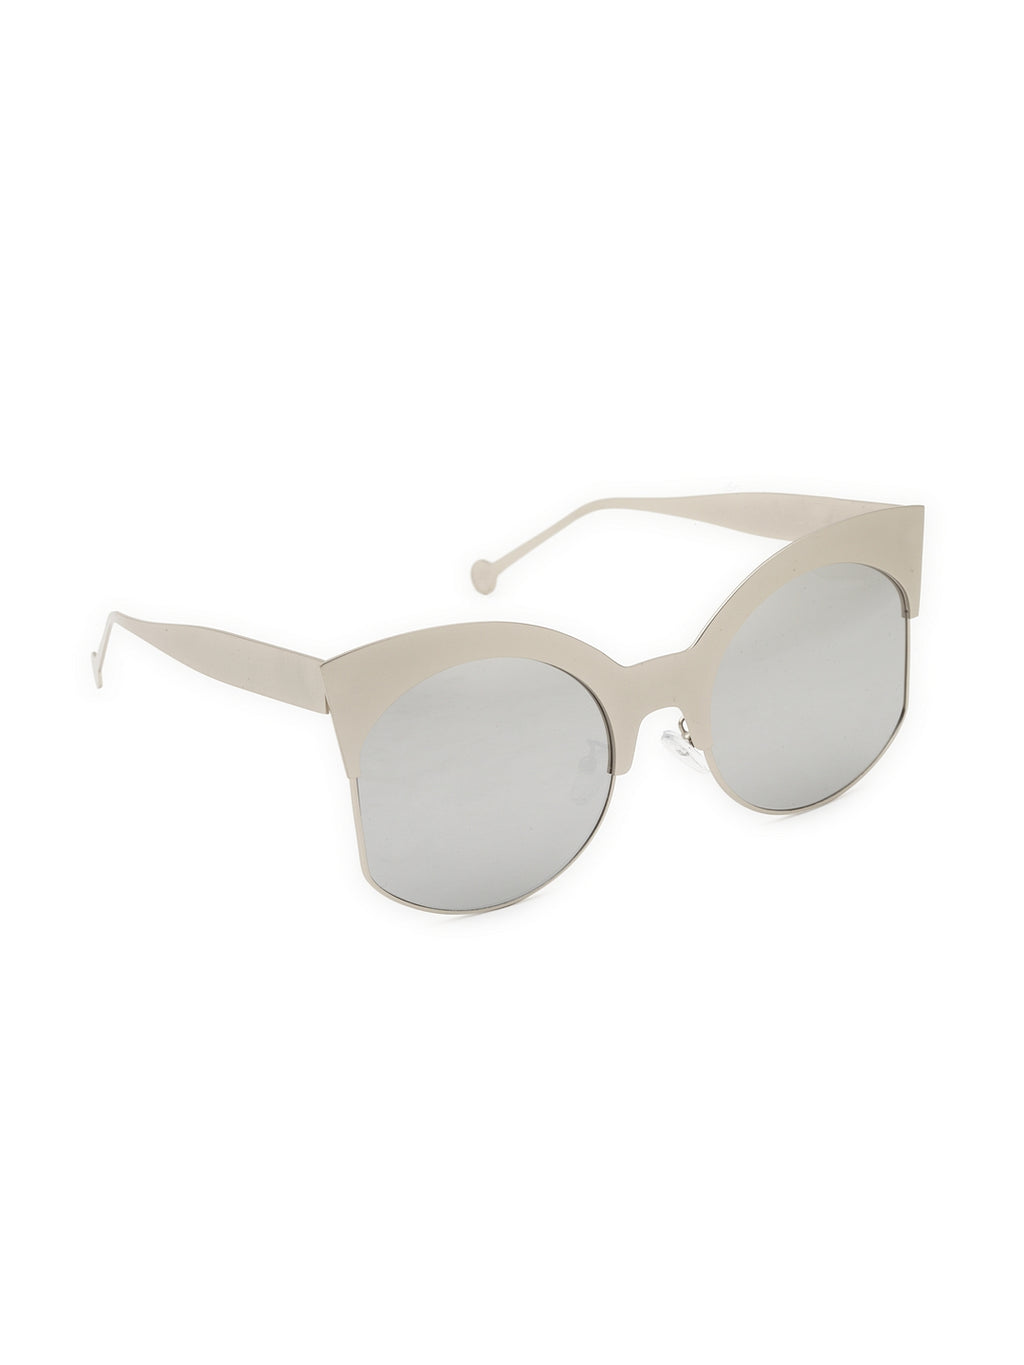 Avant-Garde Paris Oversized cateye fashion sunglasses